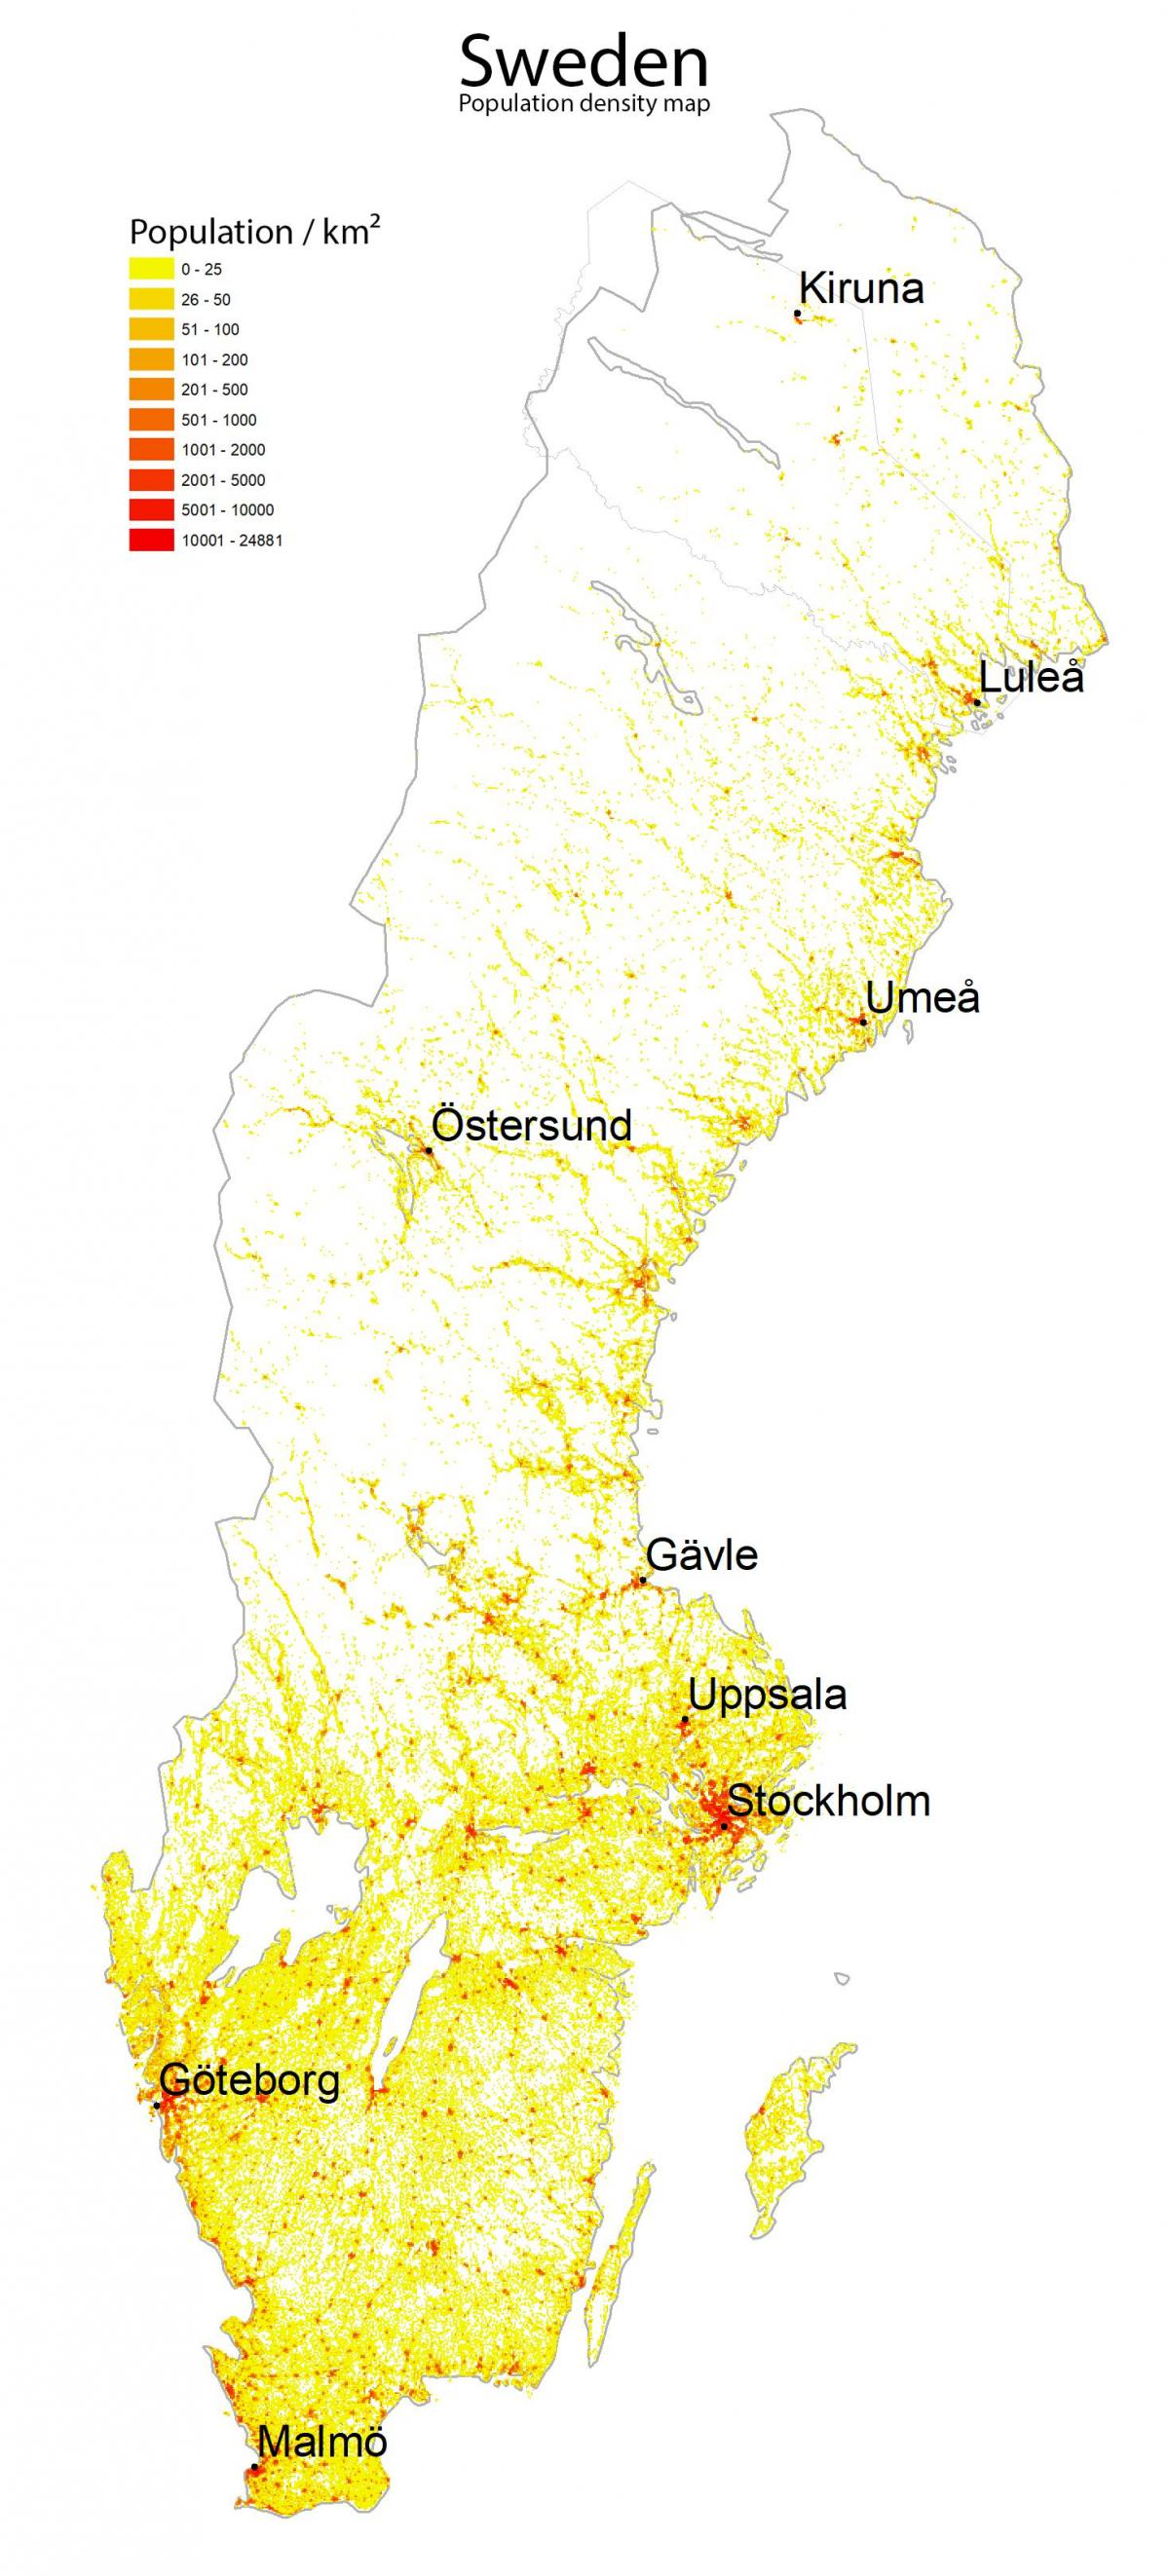 population density map of Sweden